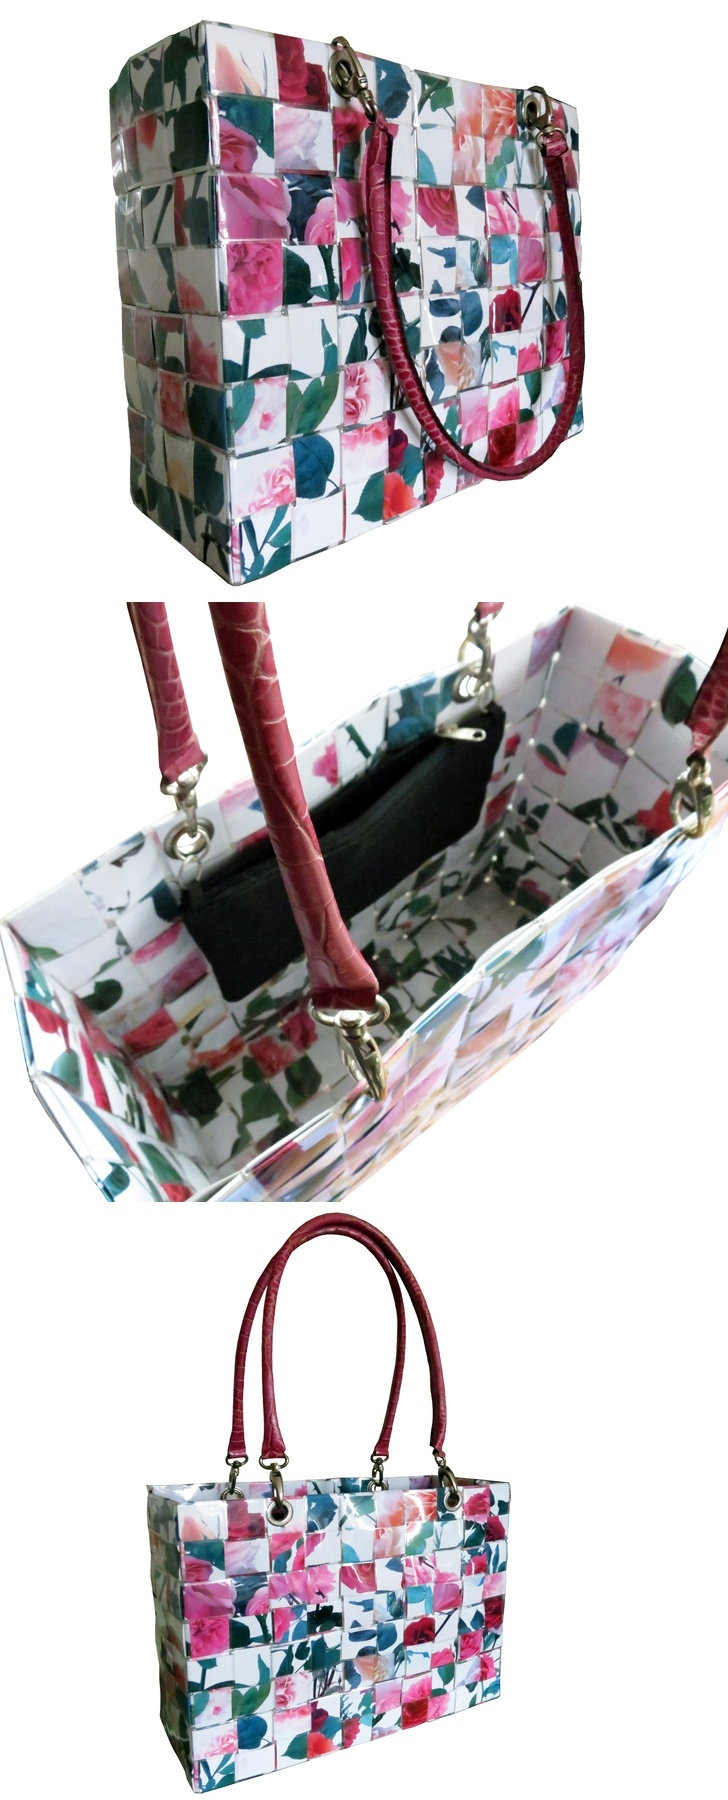 Borsa shopper creata con immagini di rose // Shopper bag created with rose pictures by CeeBee-recycle via it.dawanda.com #upcycling